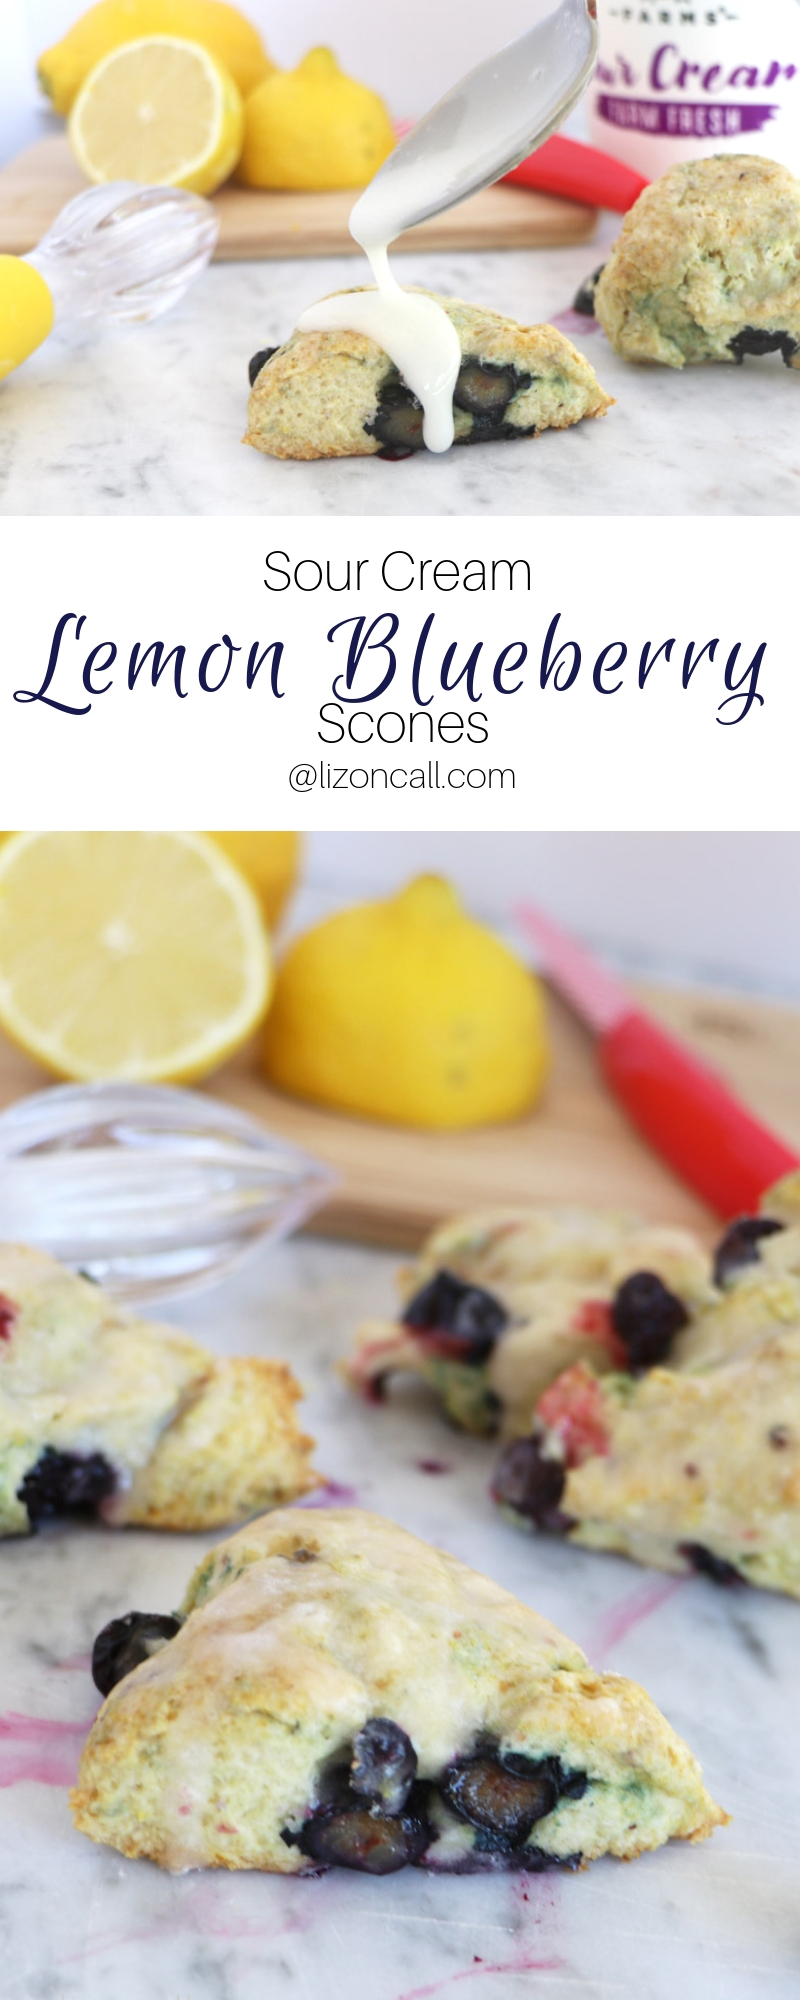 pinnable titled image lemon blueberry scones plated next to sour cream container